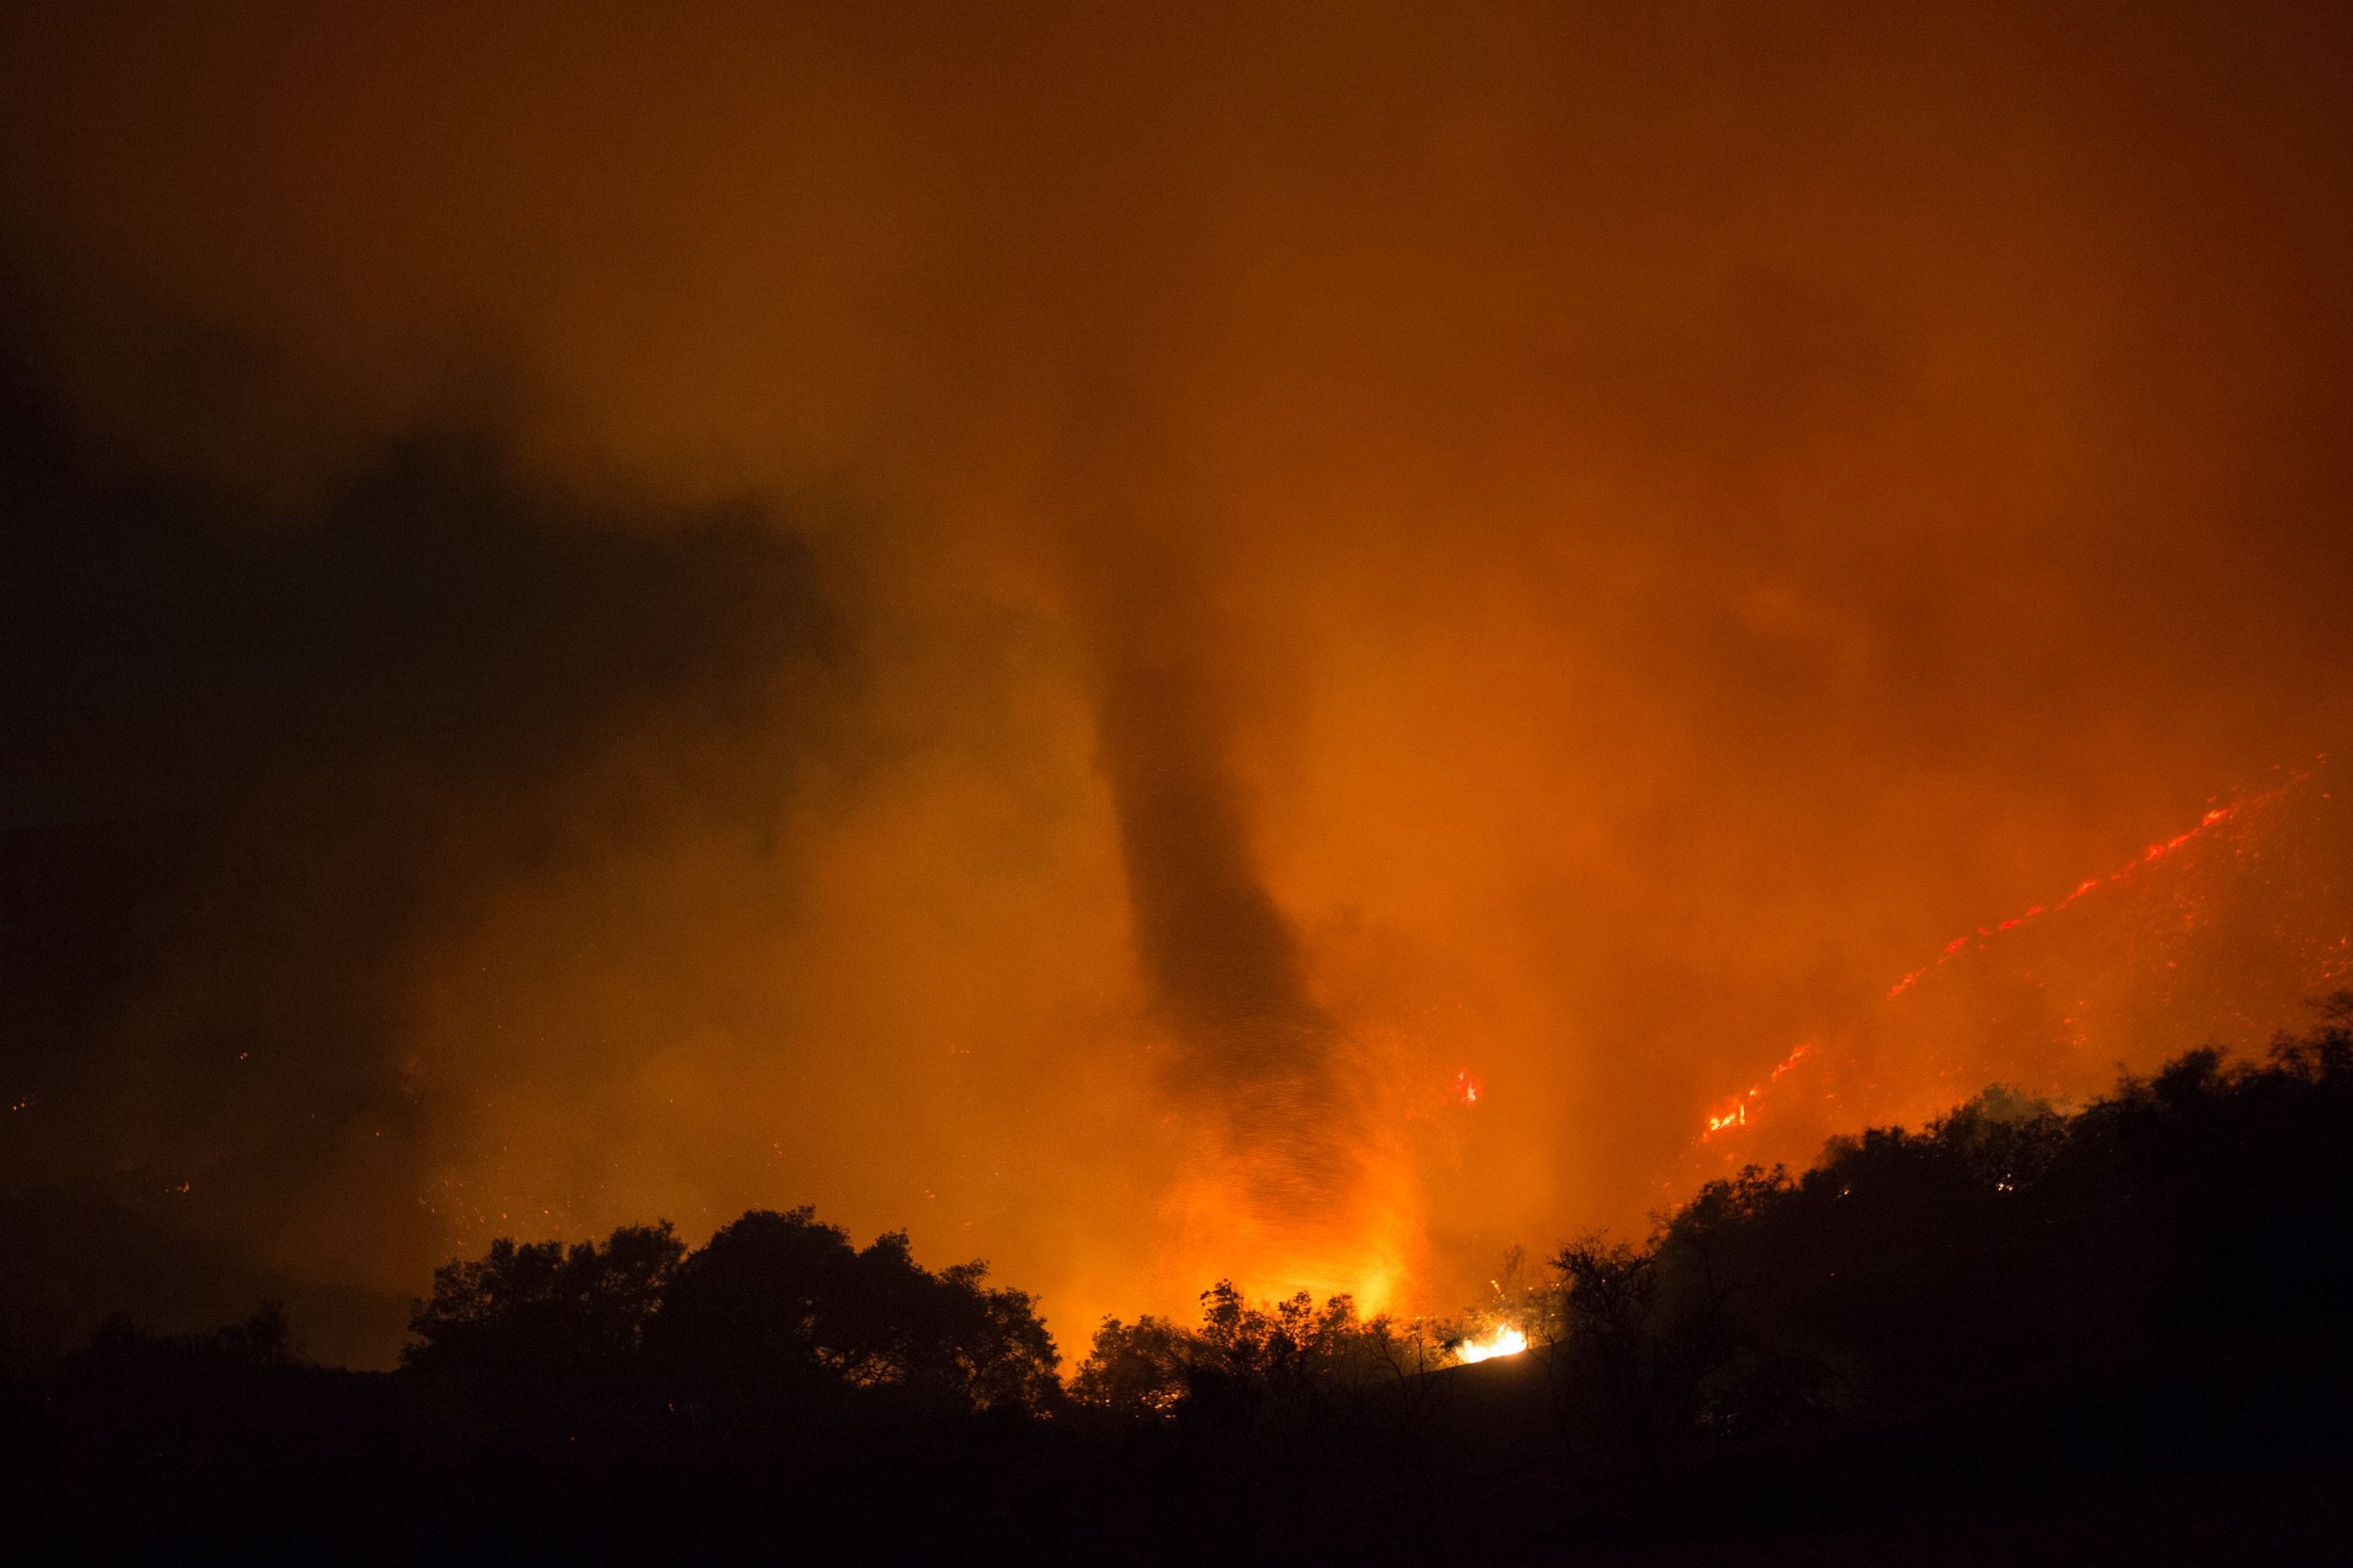 Christmas White House >> Fire Tornado Videos Go Viral After Natural Disasters in Texas and California